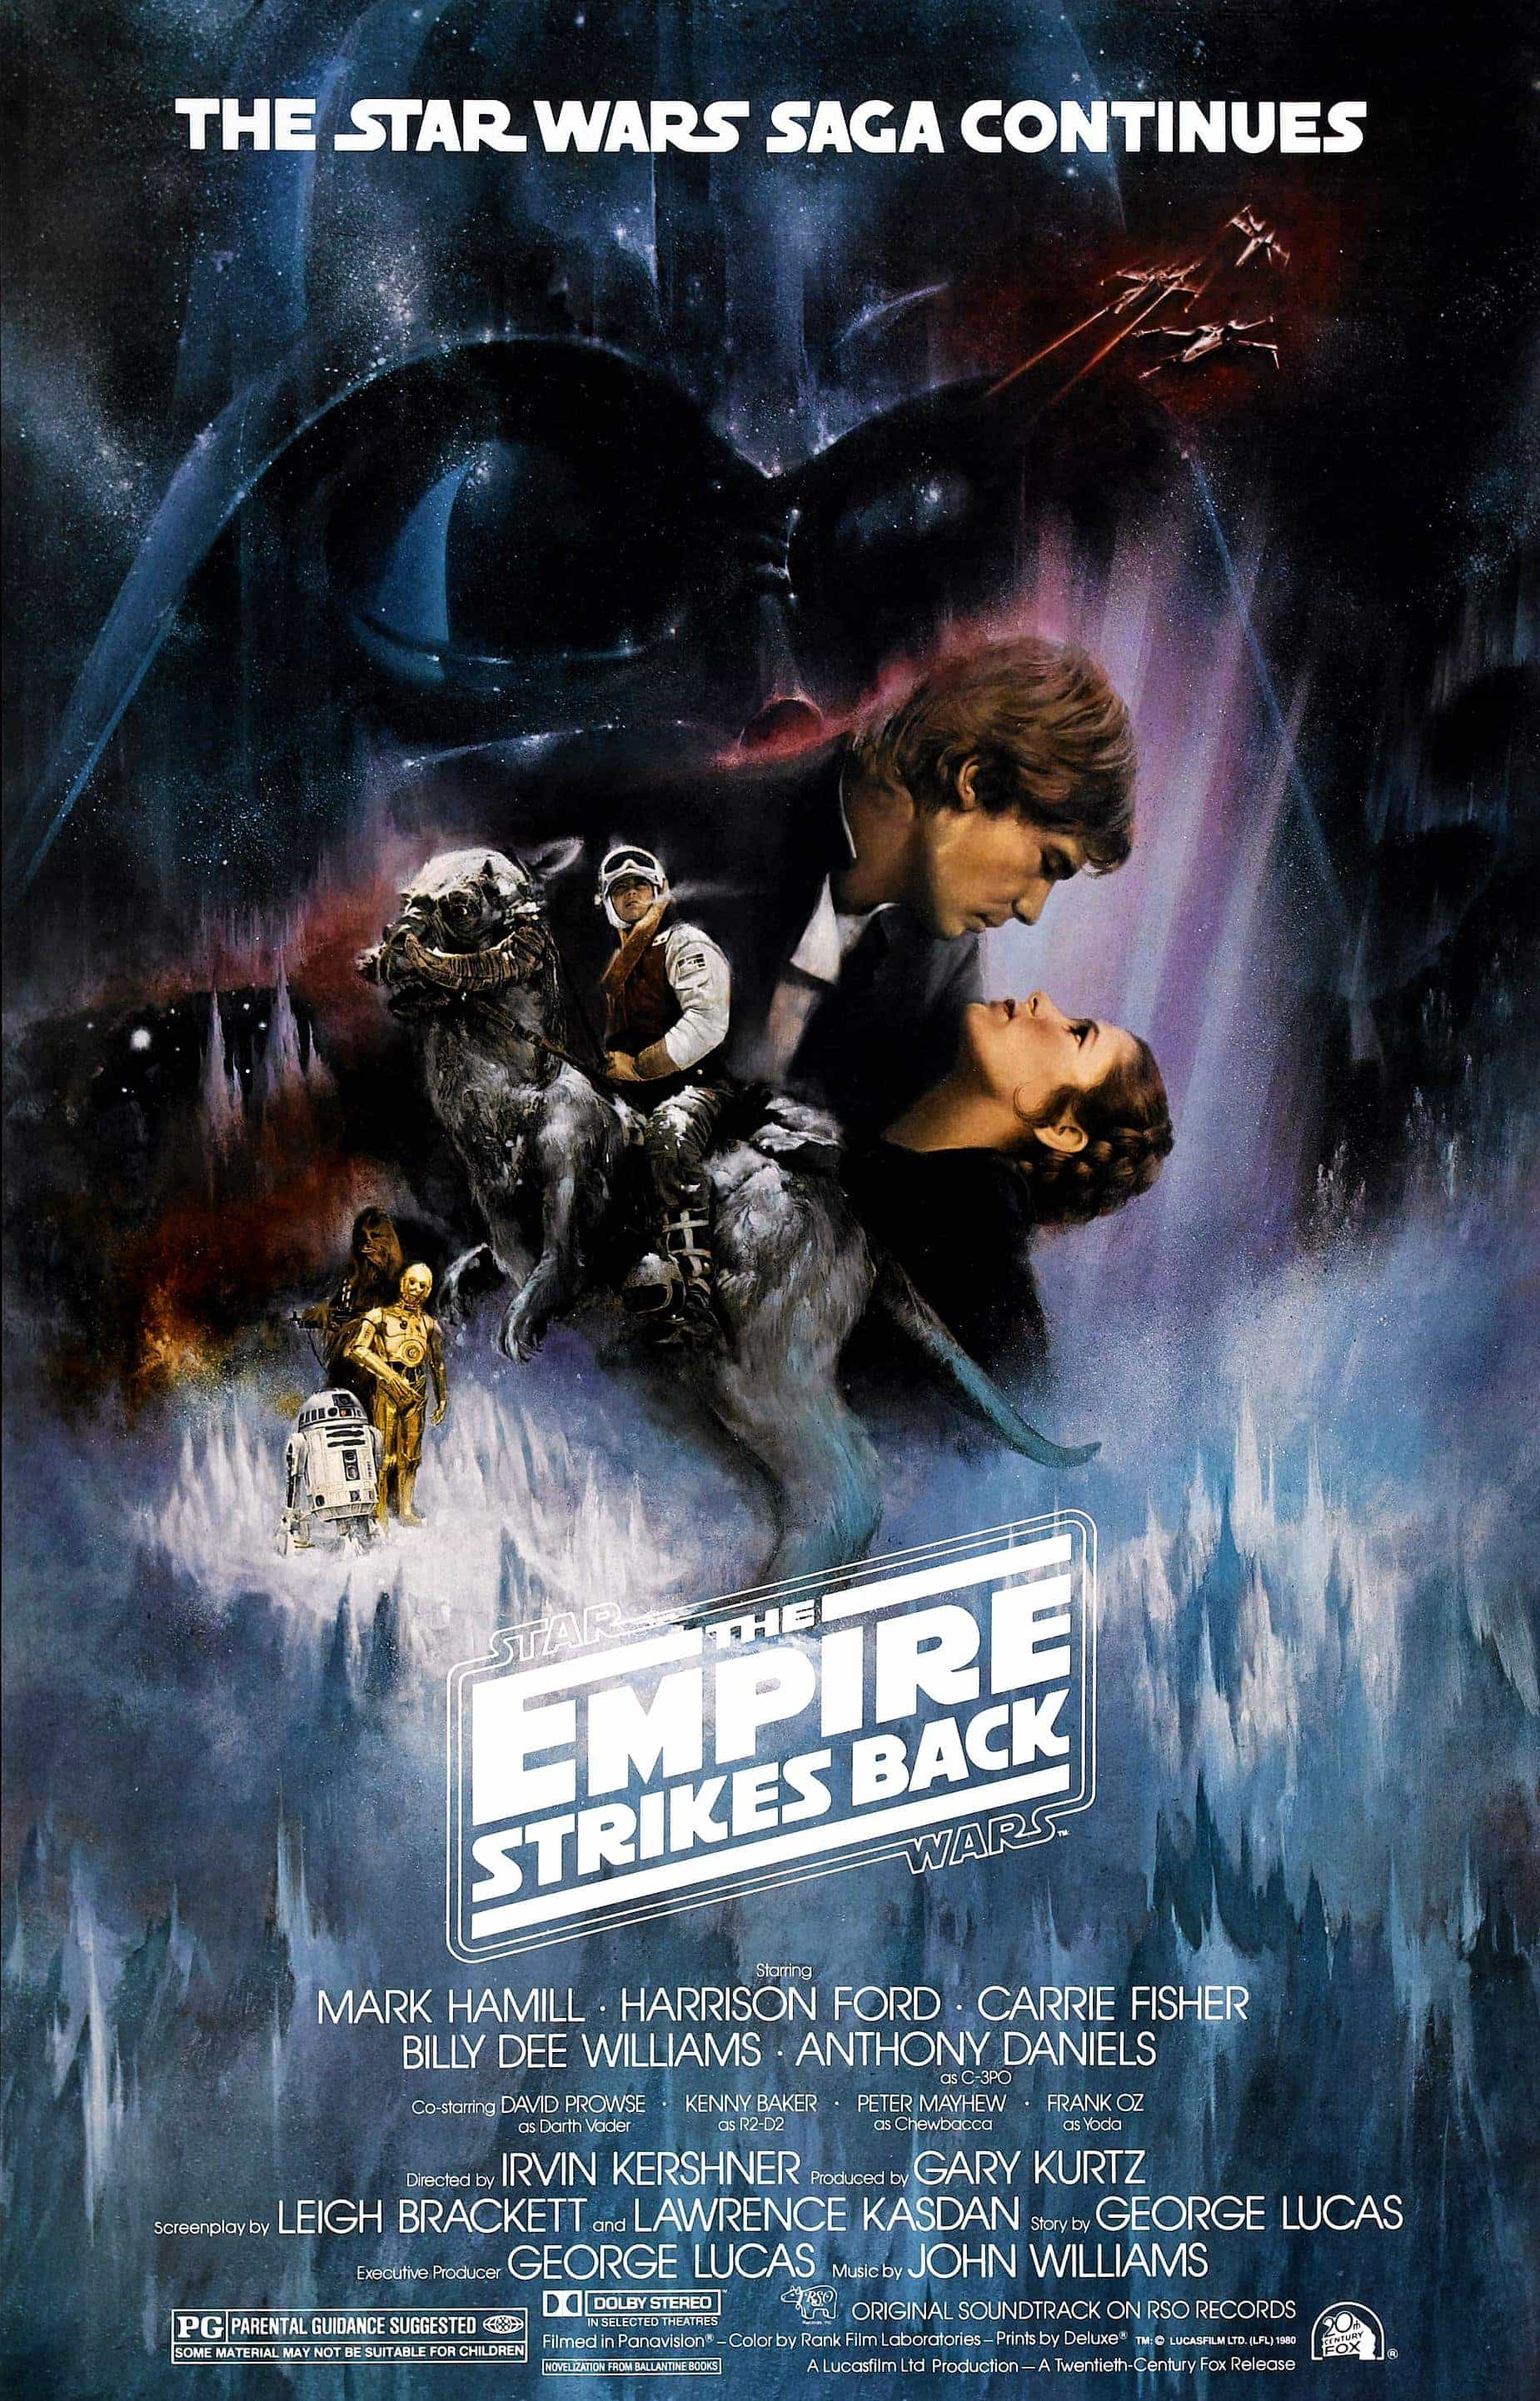 The BBFC reclassify The Empire Strikes Back as a PG age rated movie for moderate violence, mild threat